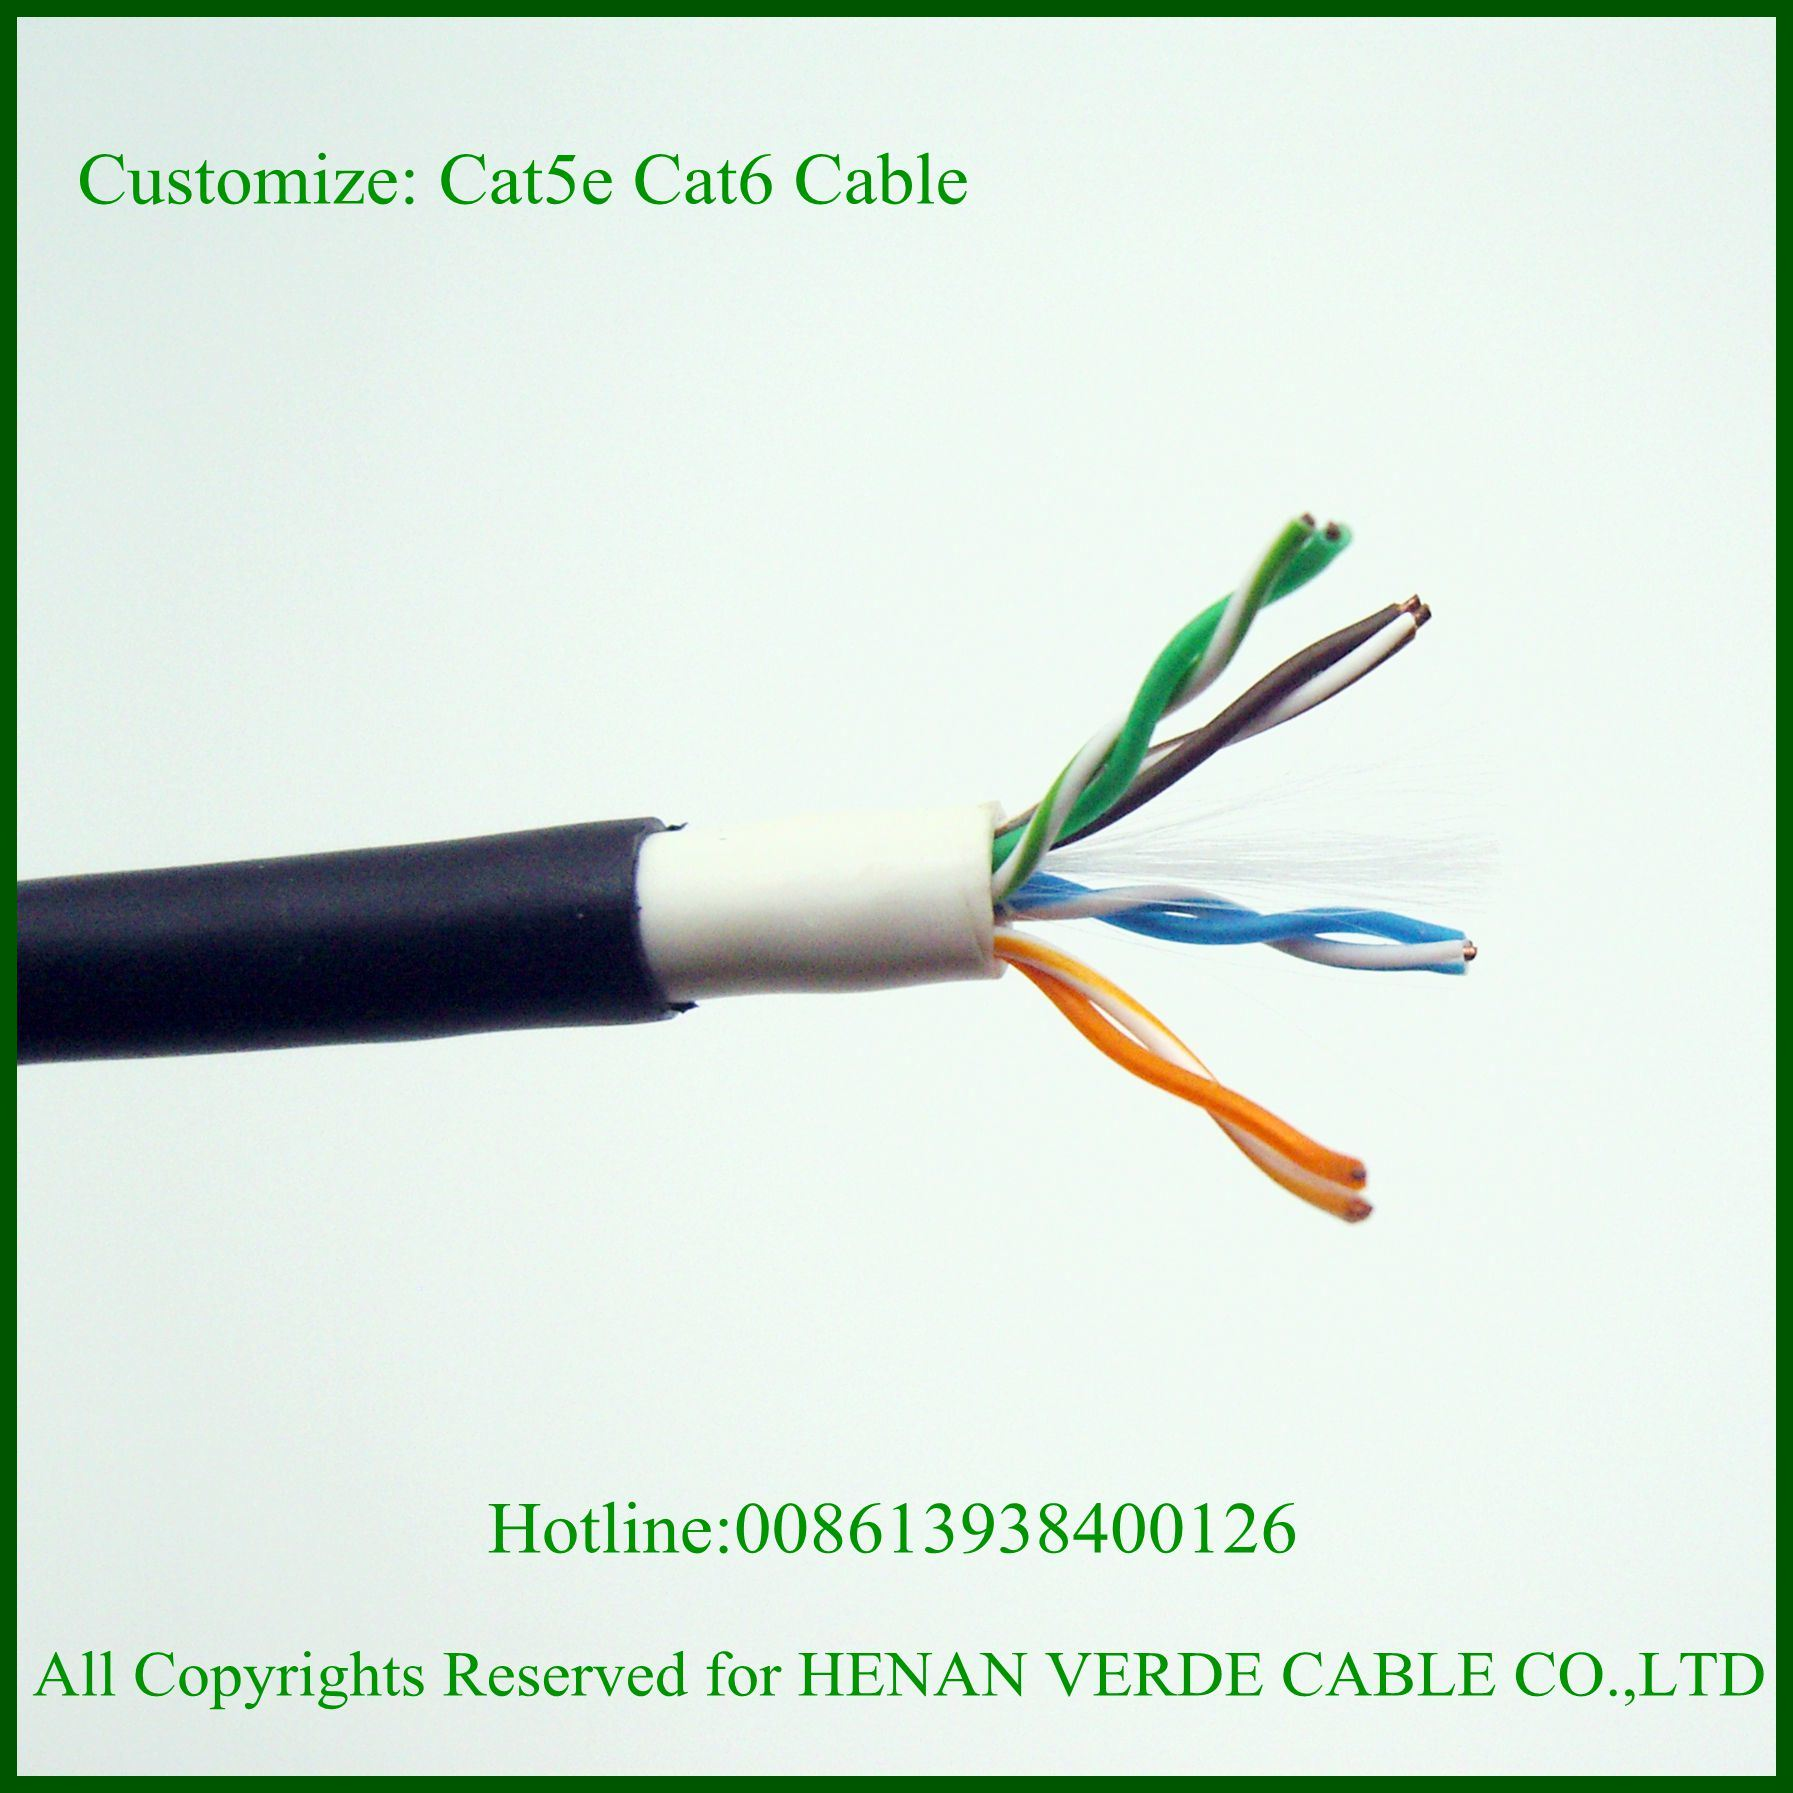 China Utp Ftp Indoor Outdoor Customized Cat5e Cat6 Network Cable Wiring Cat 6 Data